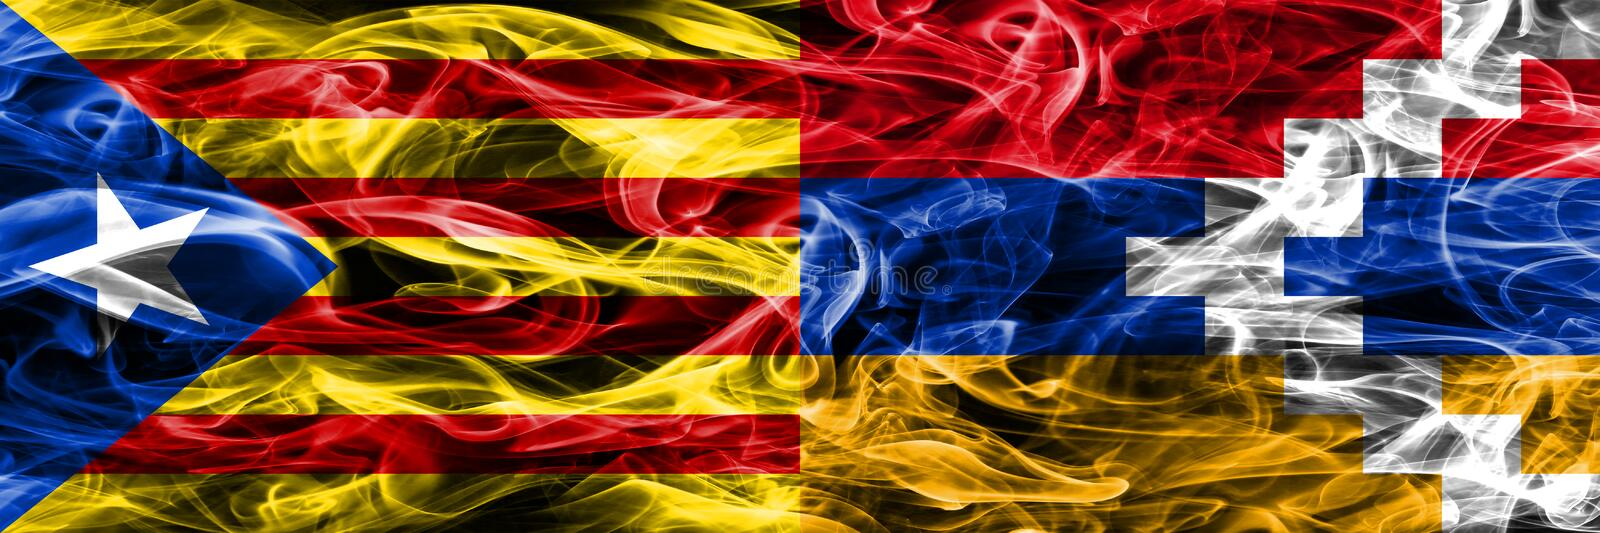 Catalonia vs Artsakh copy smoke flags placed side by side. Thick colored silky smoke flags of Catalan and Artsakh copy.  stock illustration